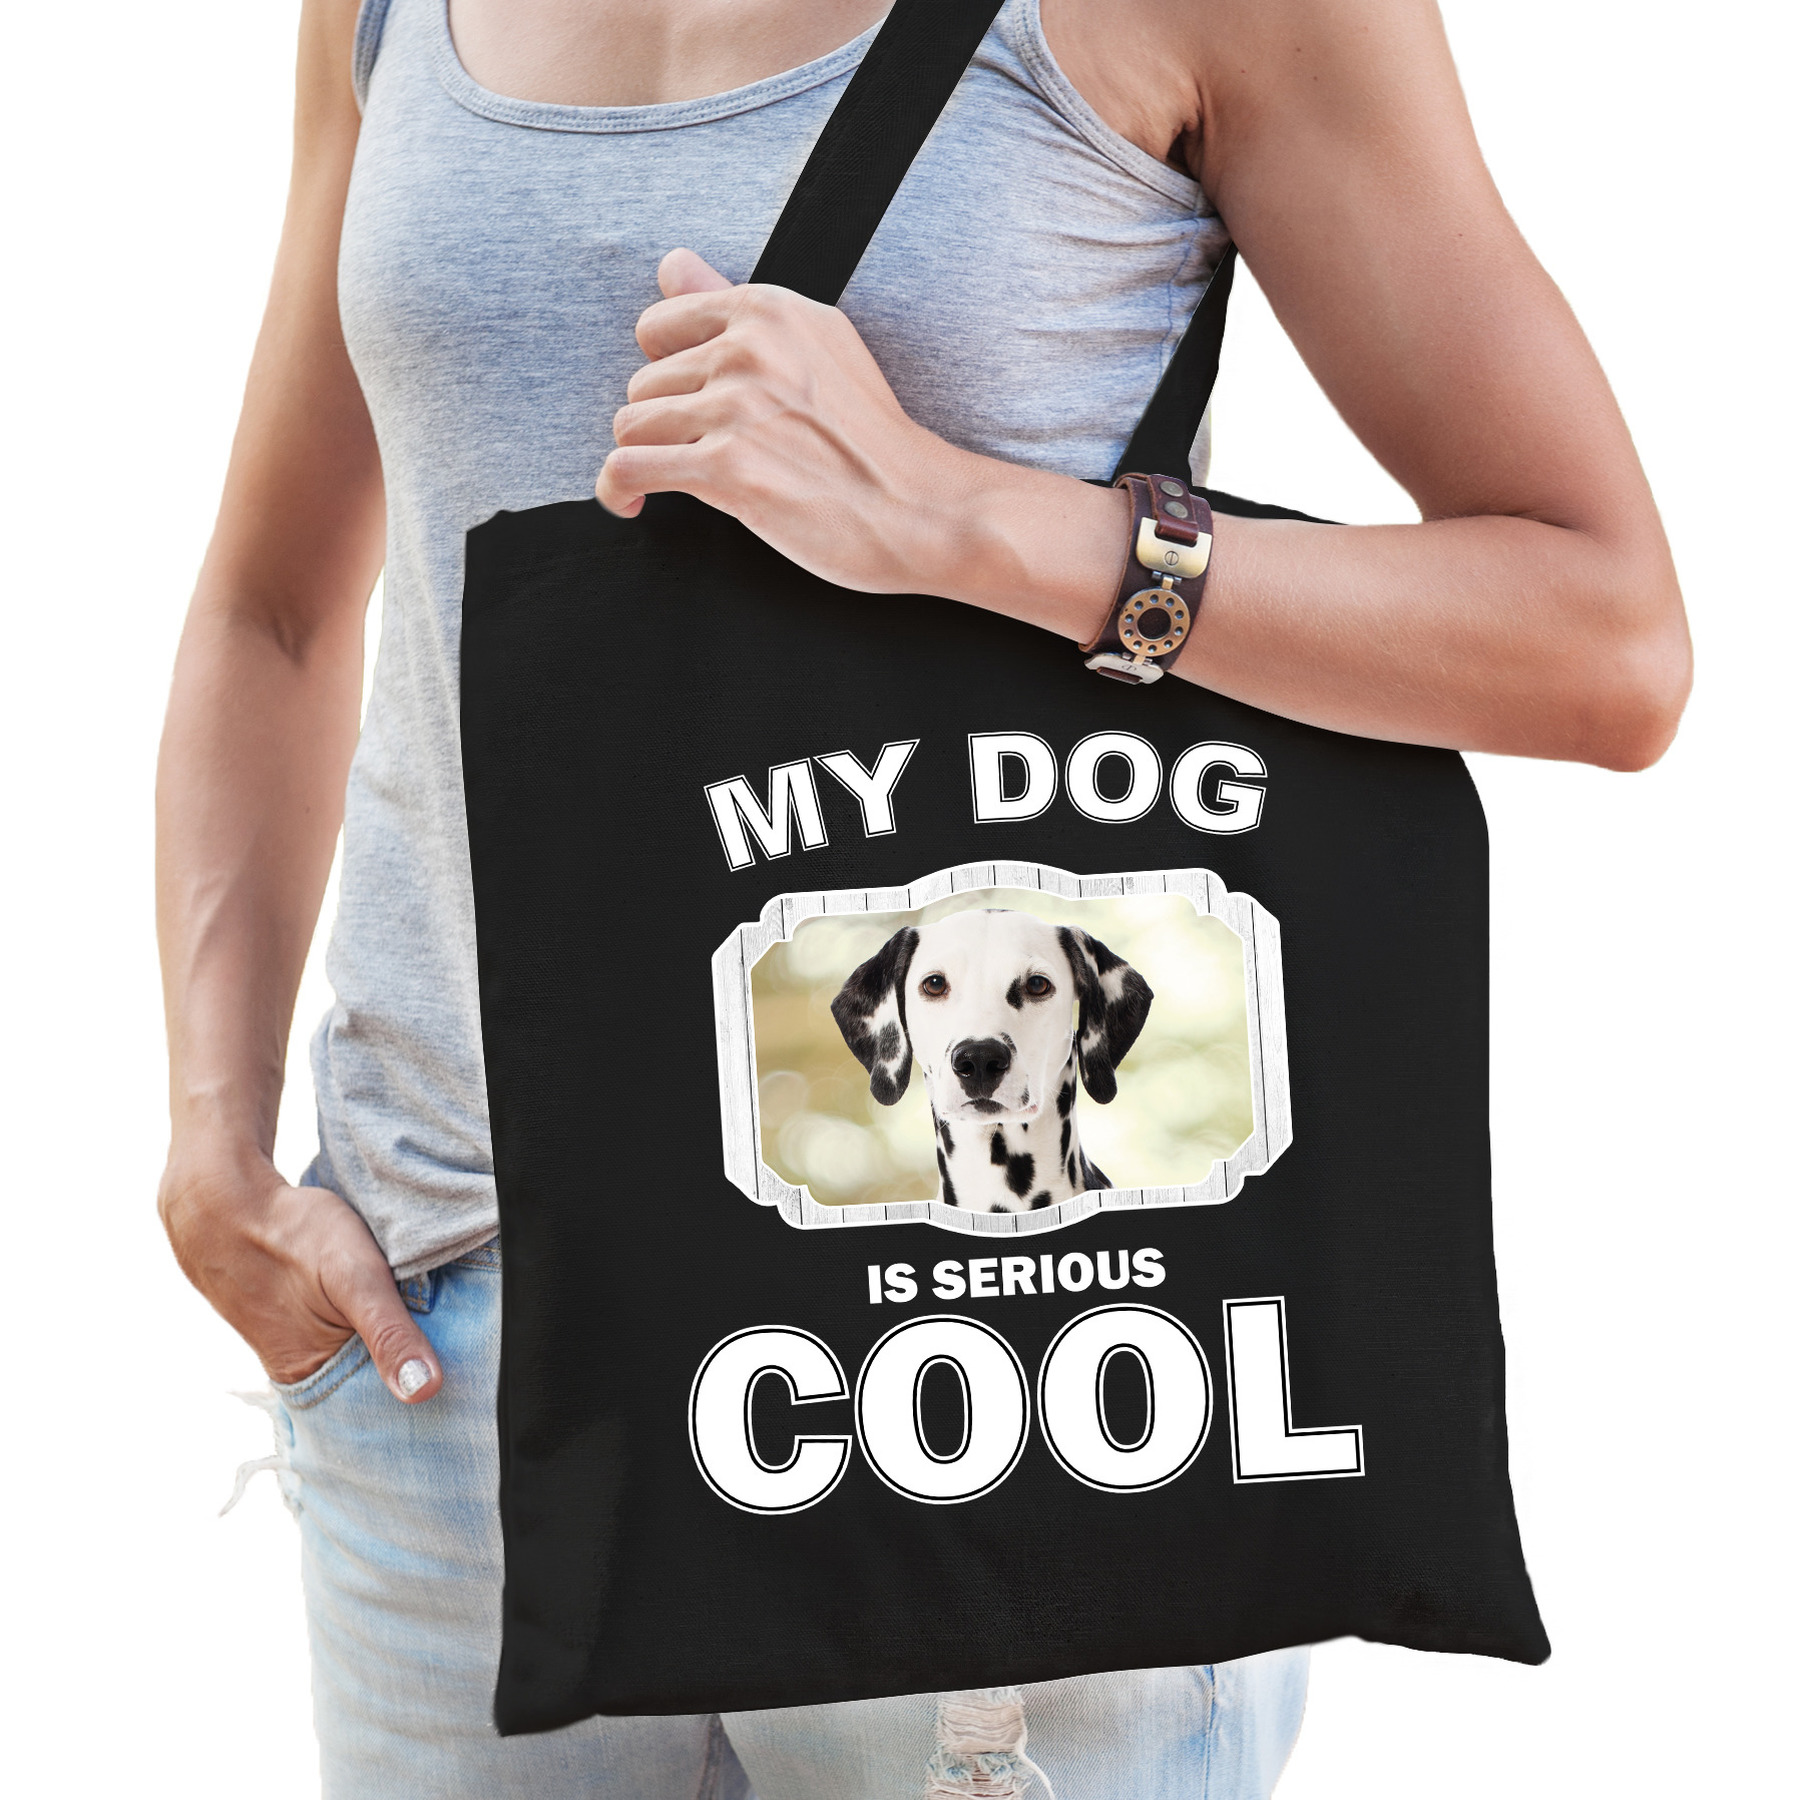 Katoenen tasje my dog is serious cool zwart - Dalmatier honden cadeau tas